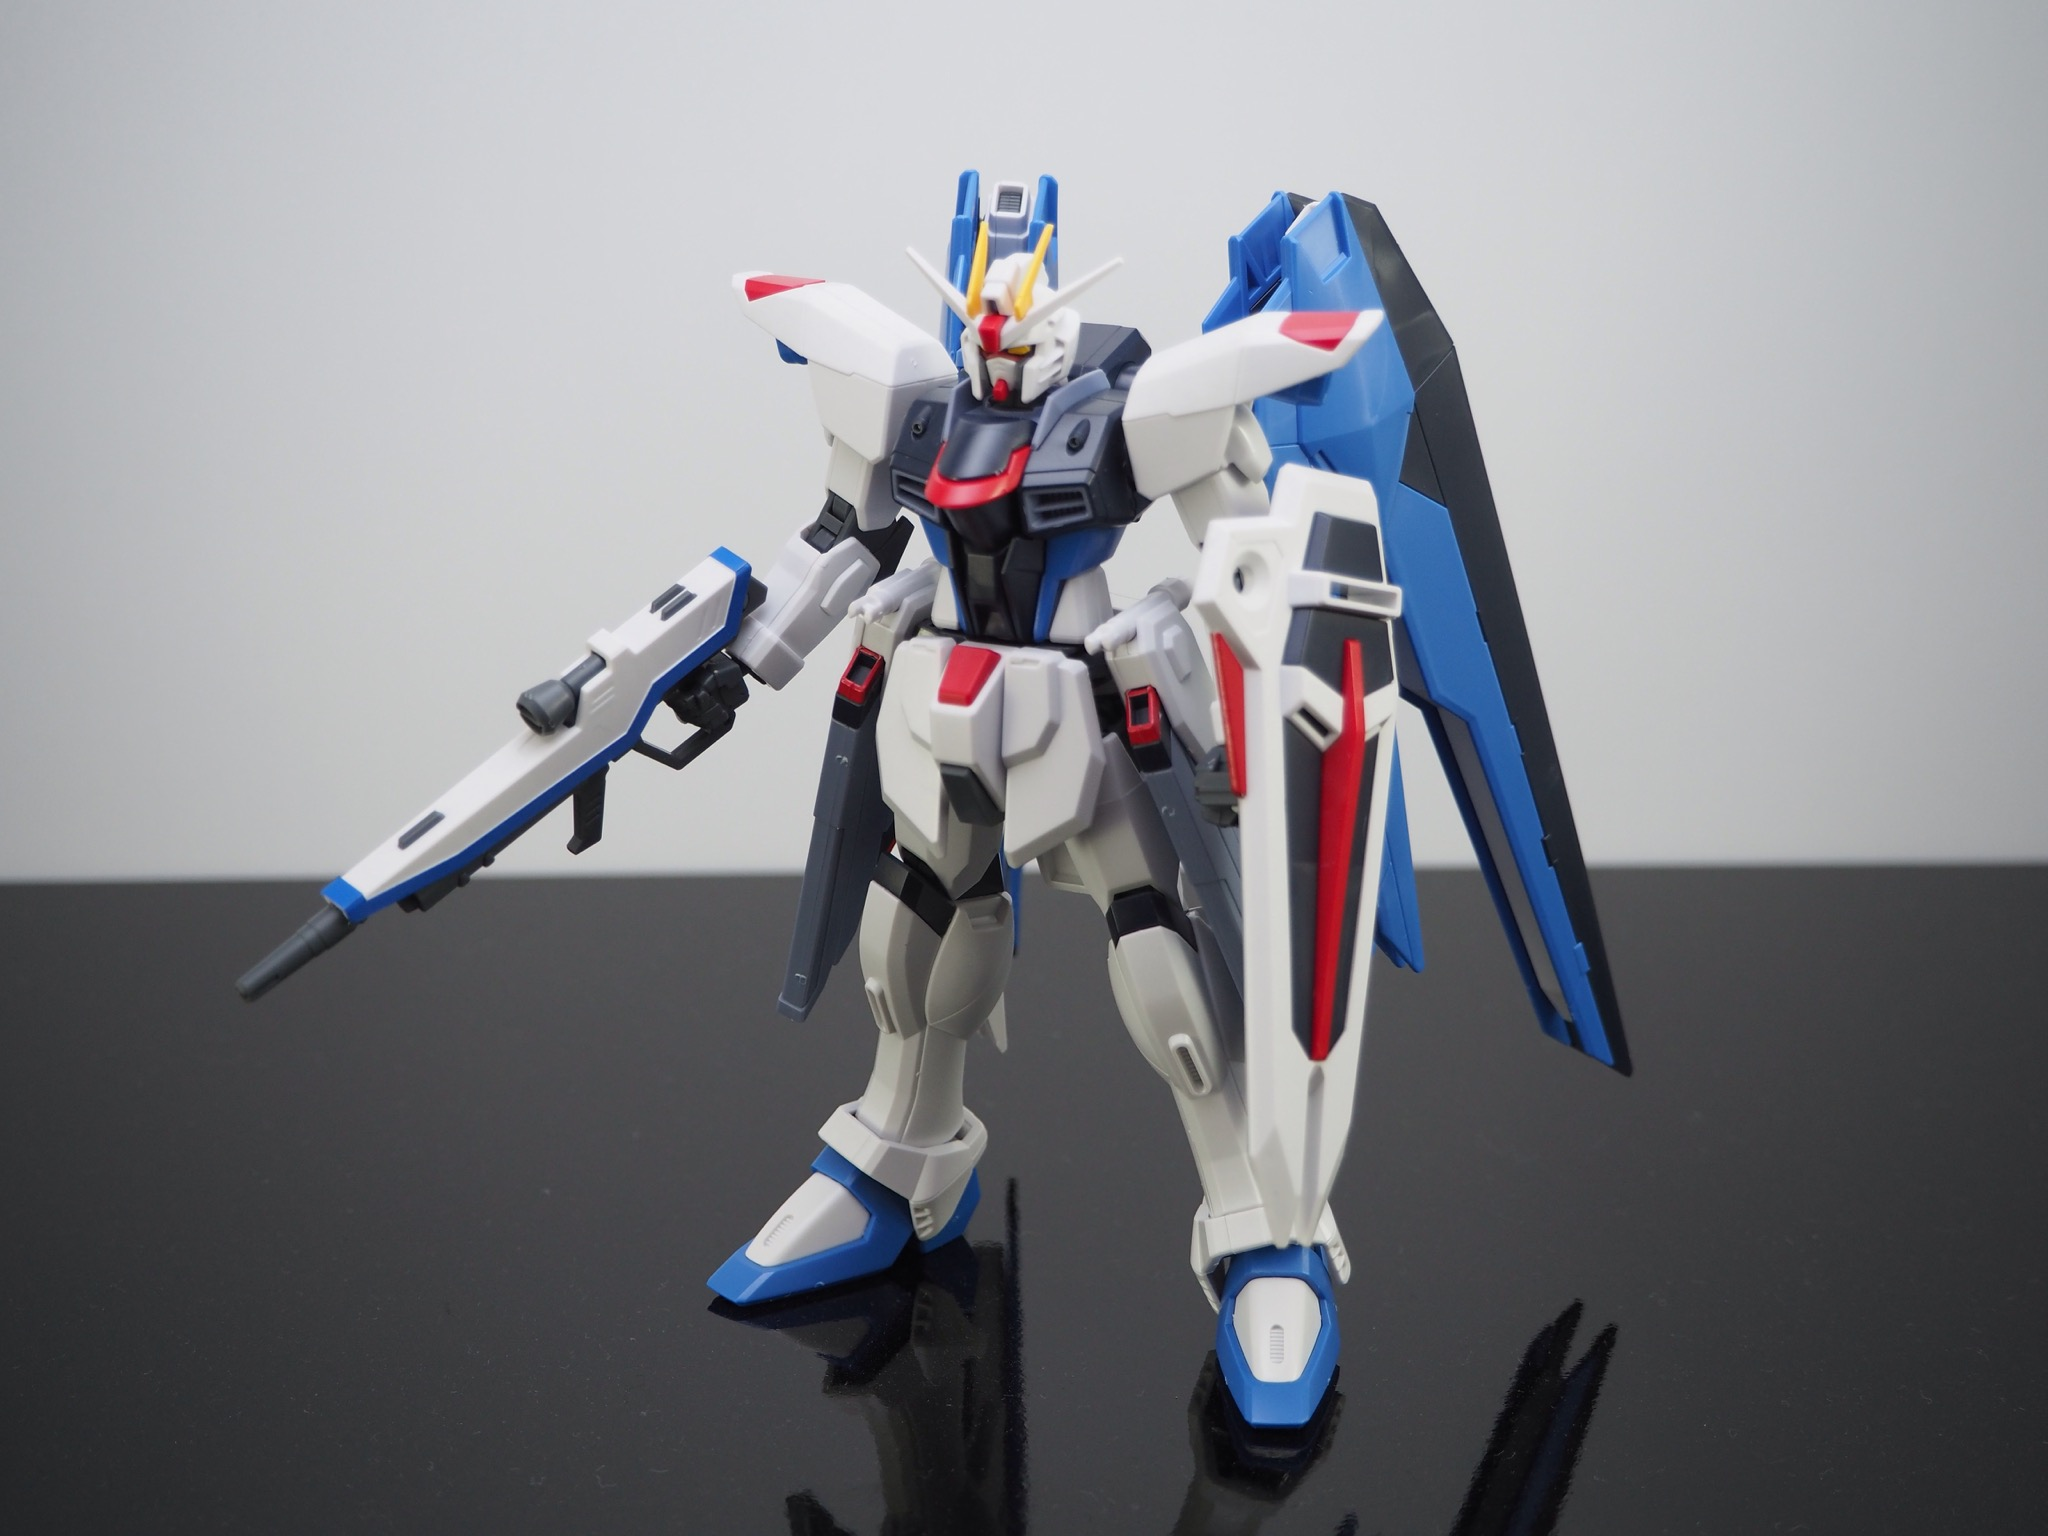 HGCE REVIVE 1/144 ZGMF-X10A フリーダムガンダム